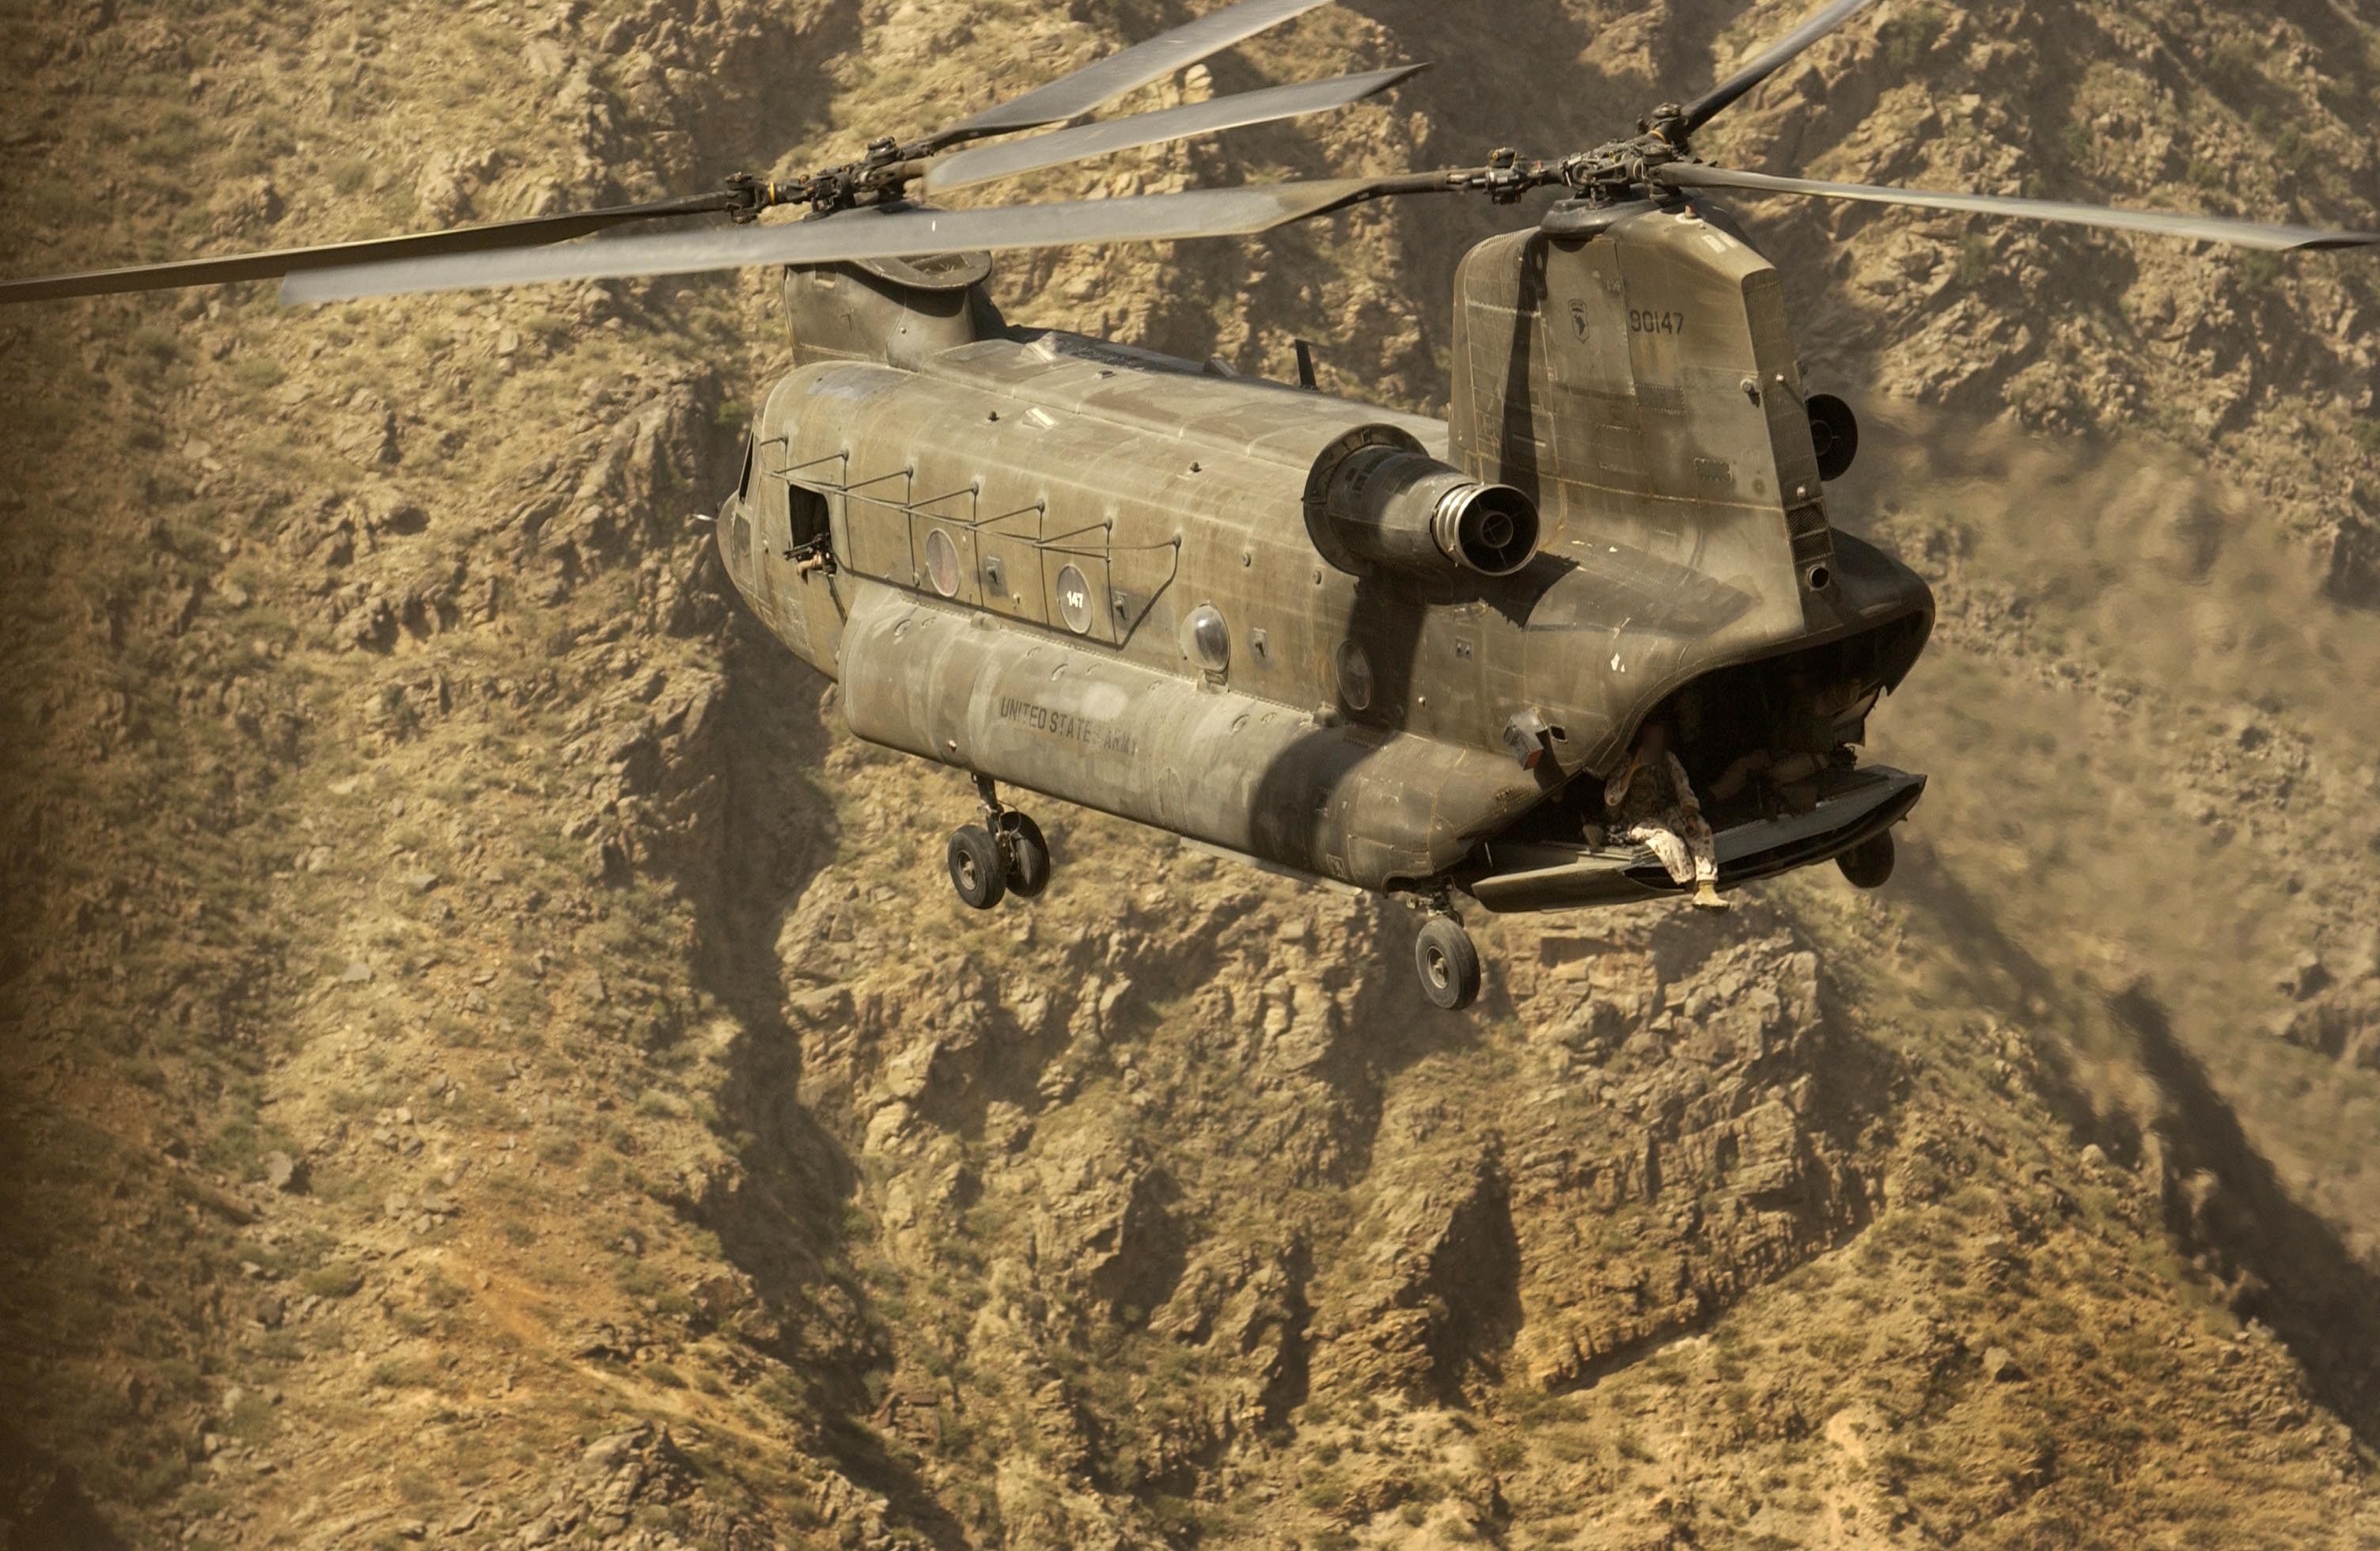 Military - Boeing CH-47 Chinook  - Chinock Wallpaper